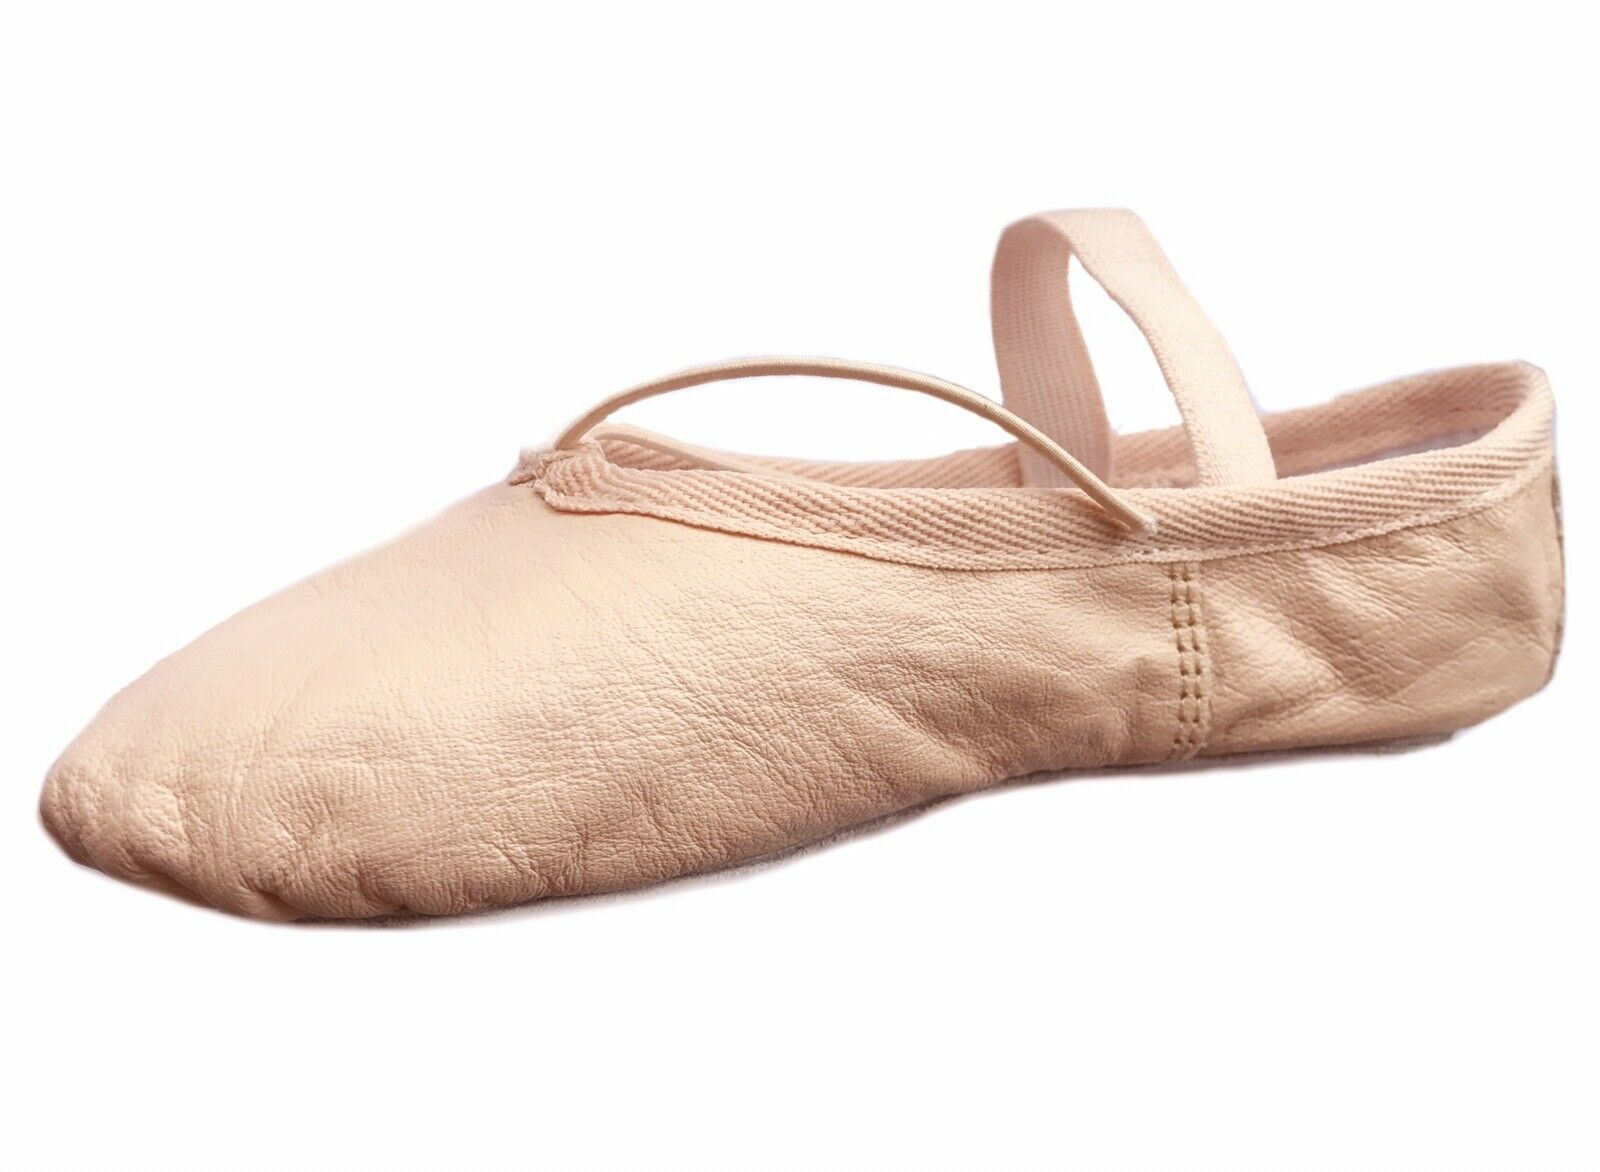 Ballet Shoes, Pink Leather Ballet Dance shoes Full Sole Children & Adults Sizes